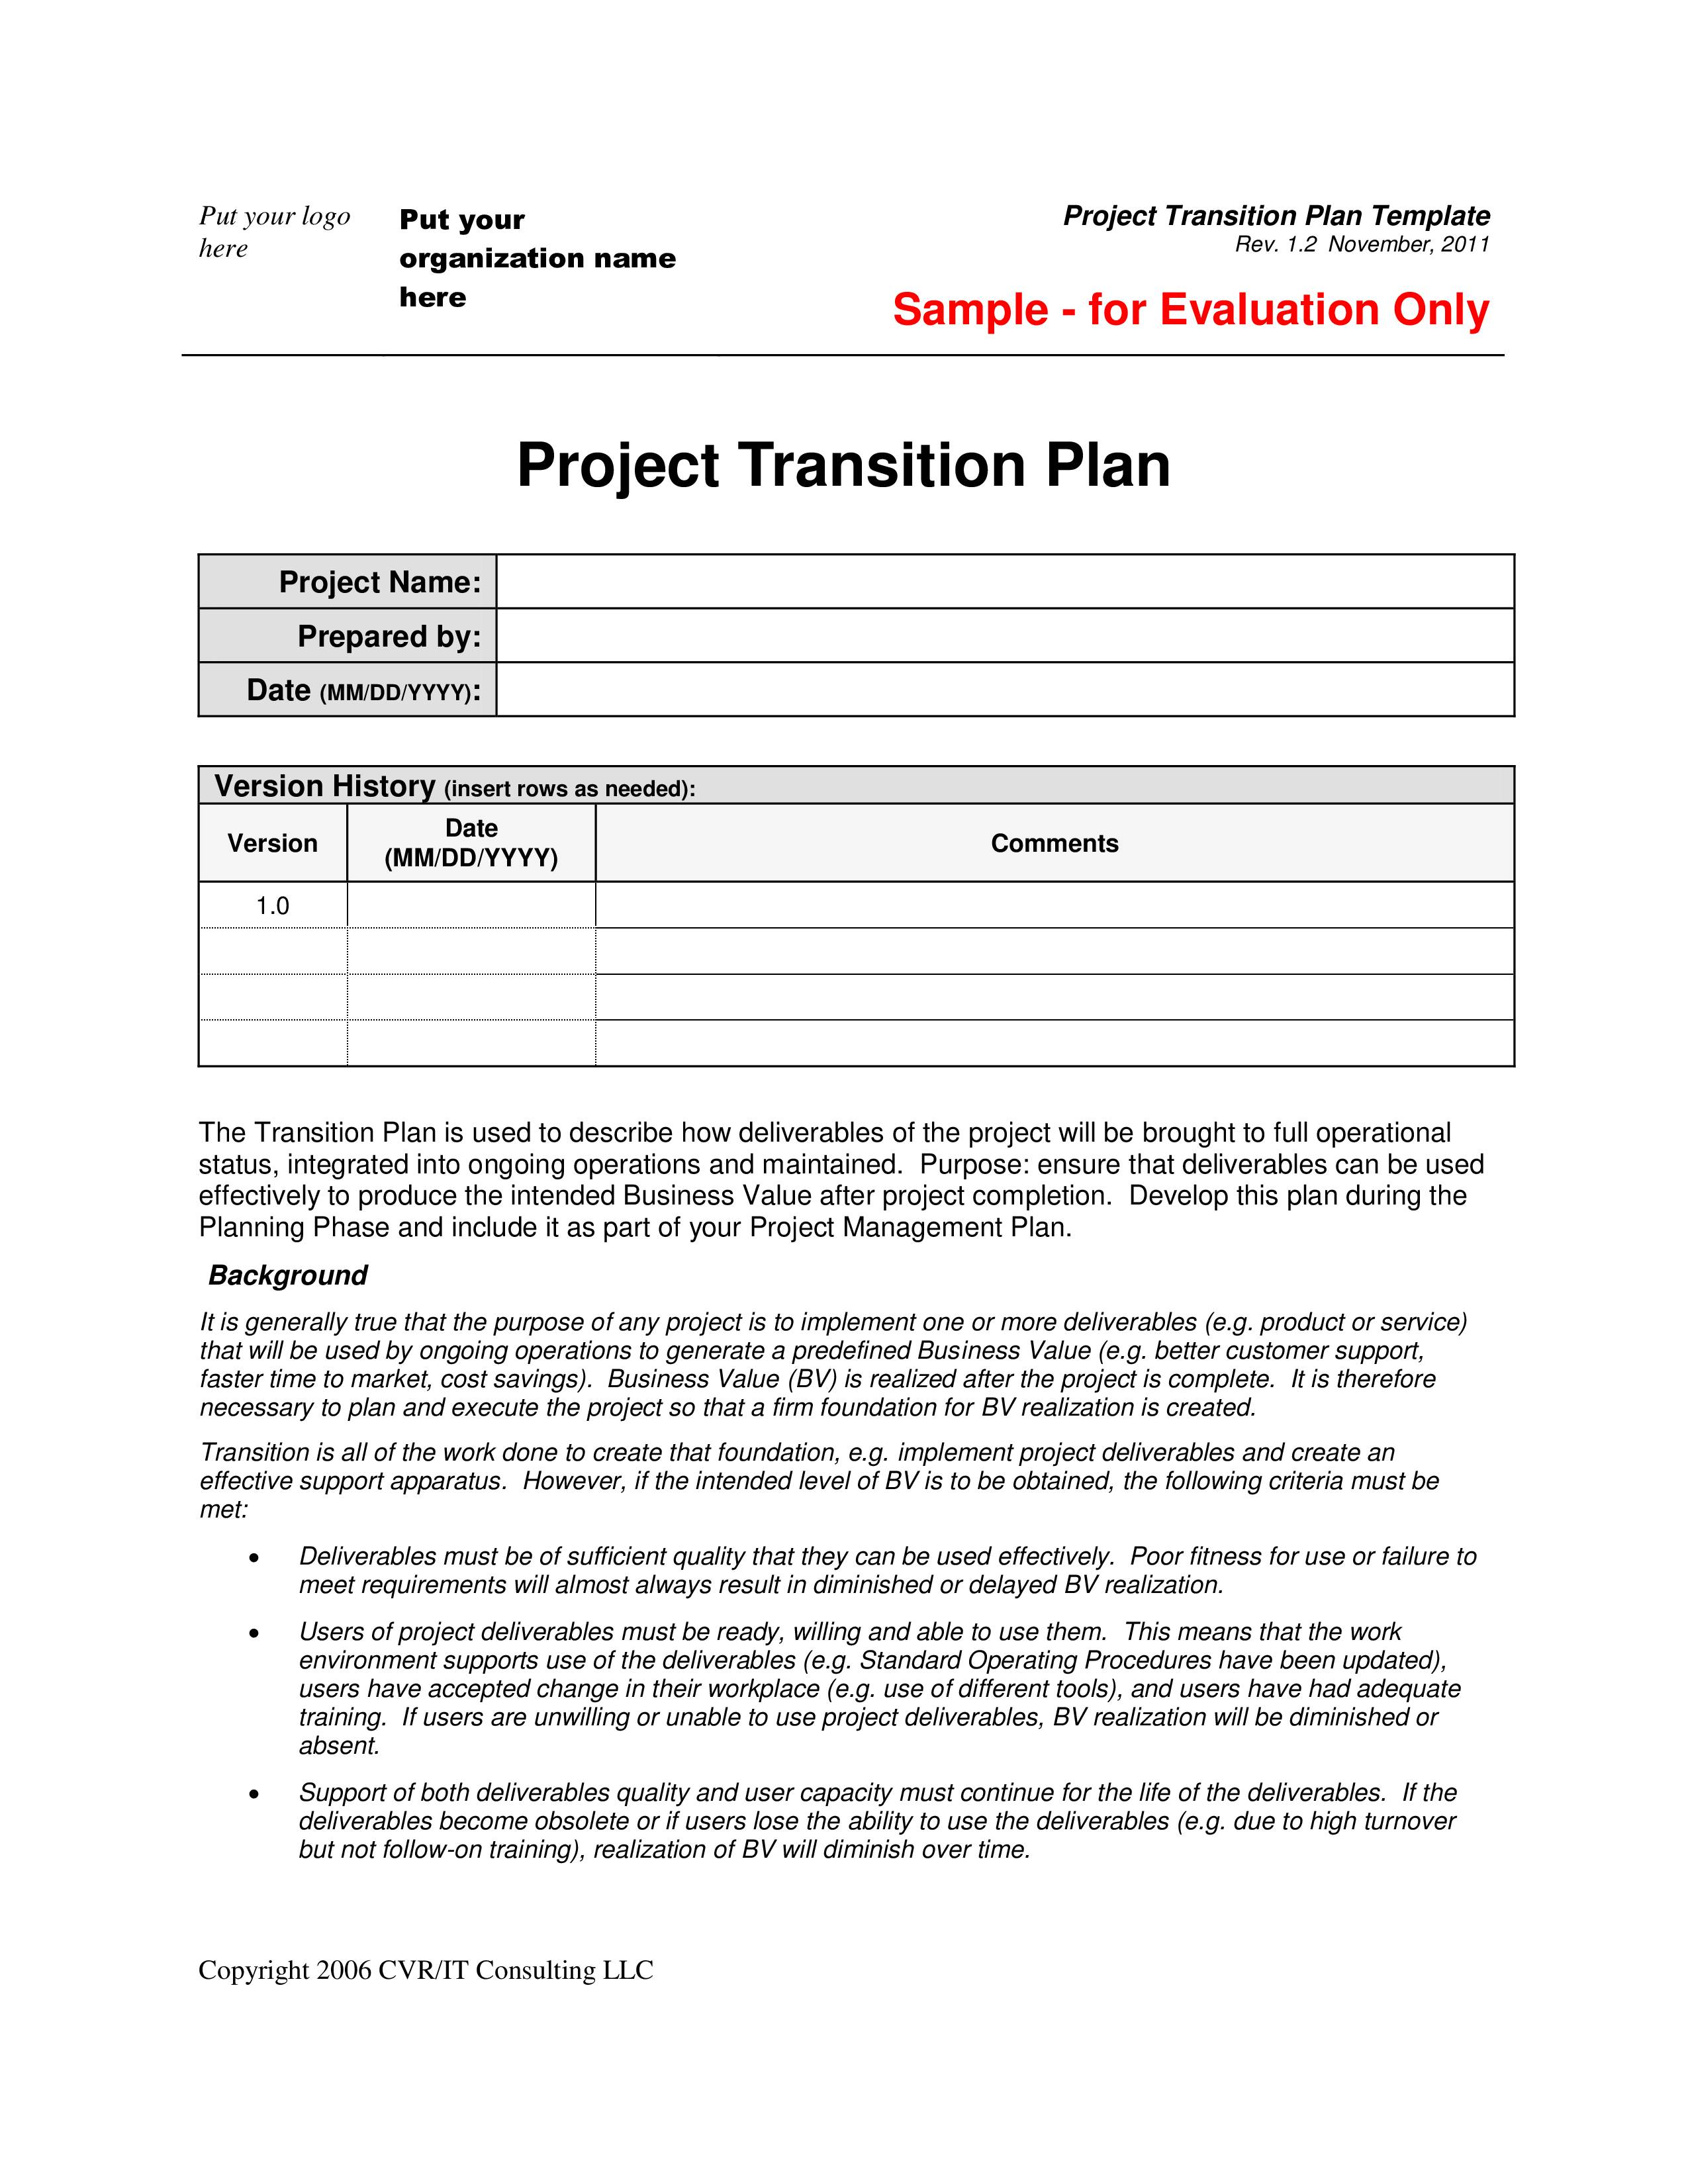 Project Transition Plan Template Free